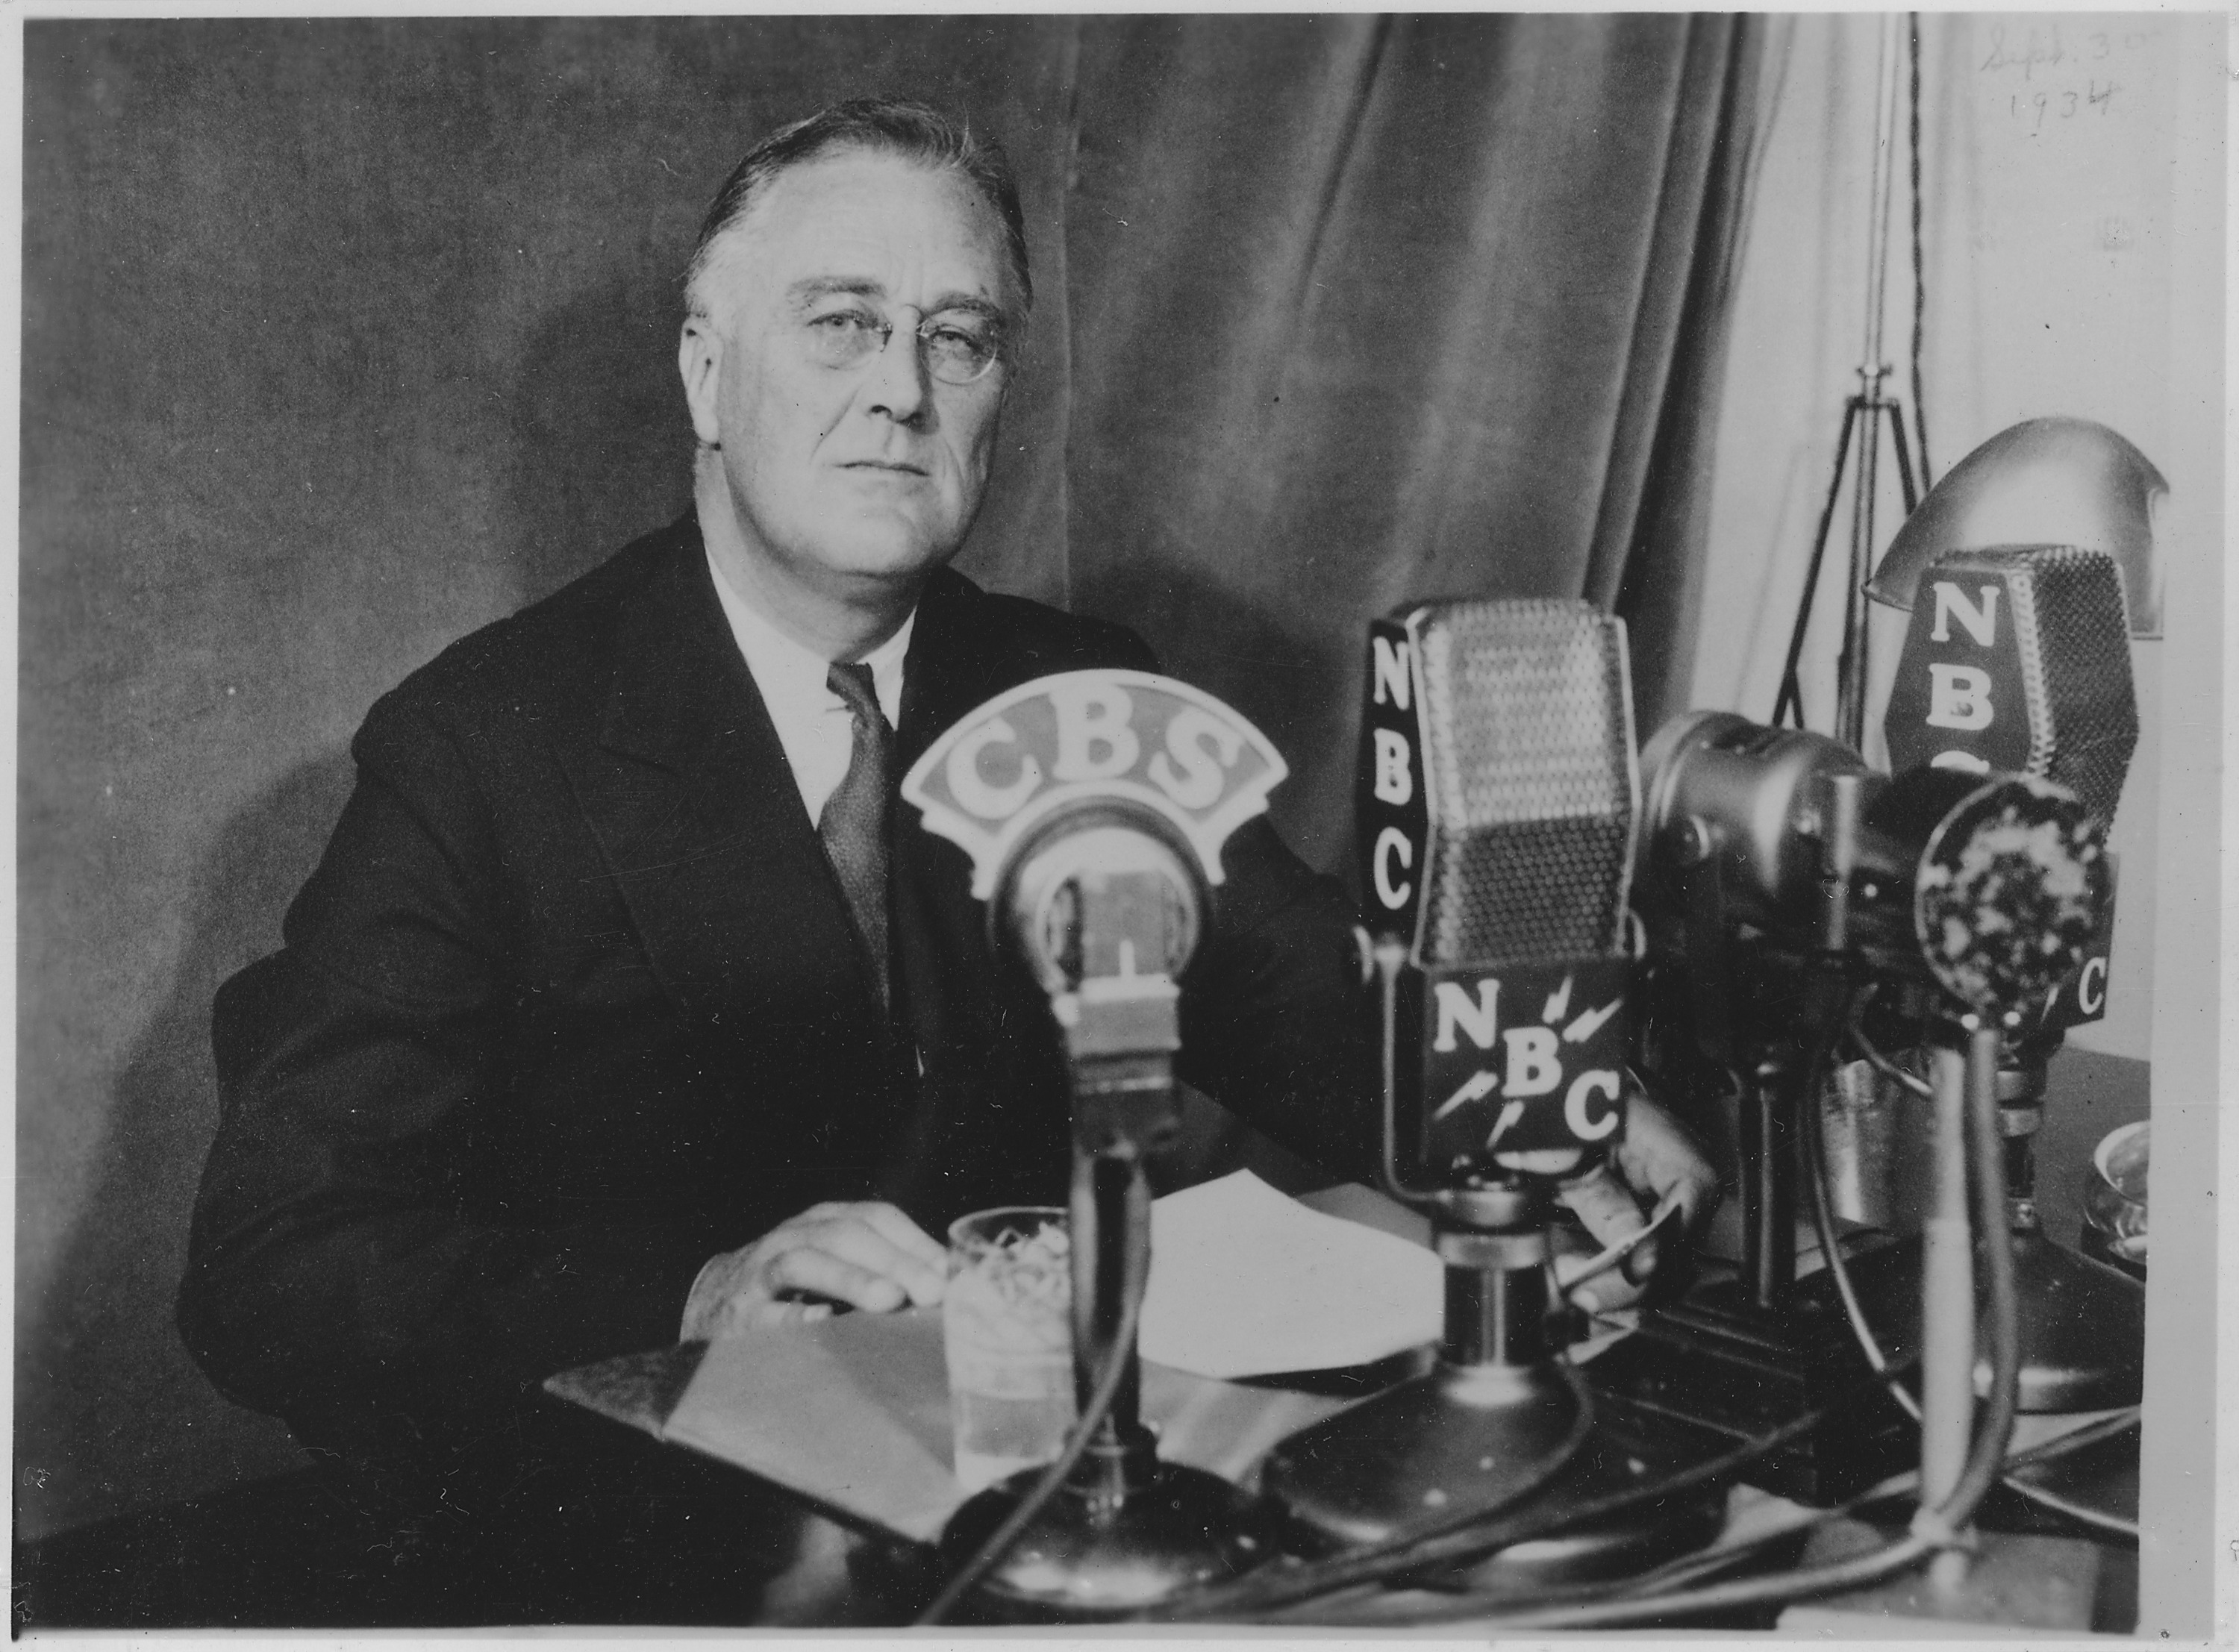 the ideas brought out in franklin roosevelts message to congress in january 6 1941